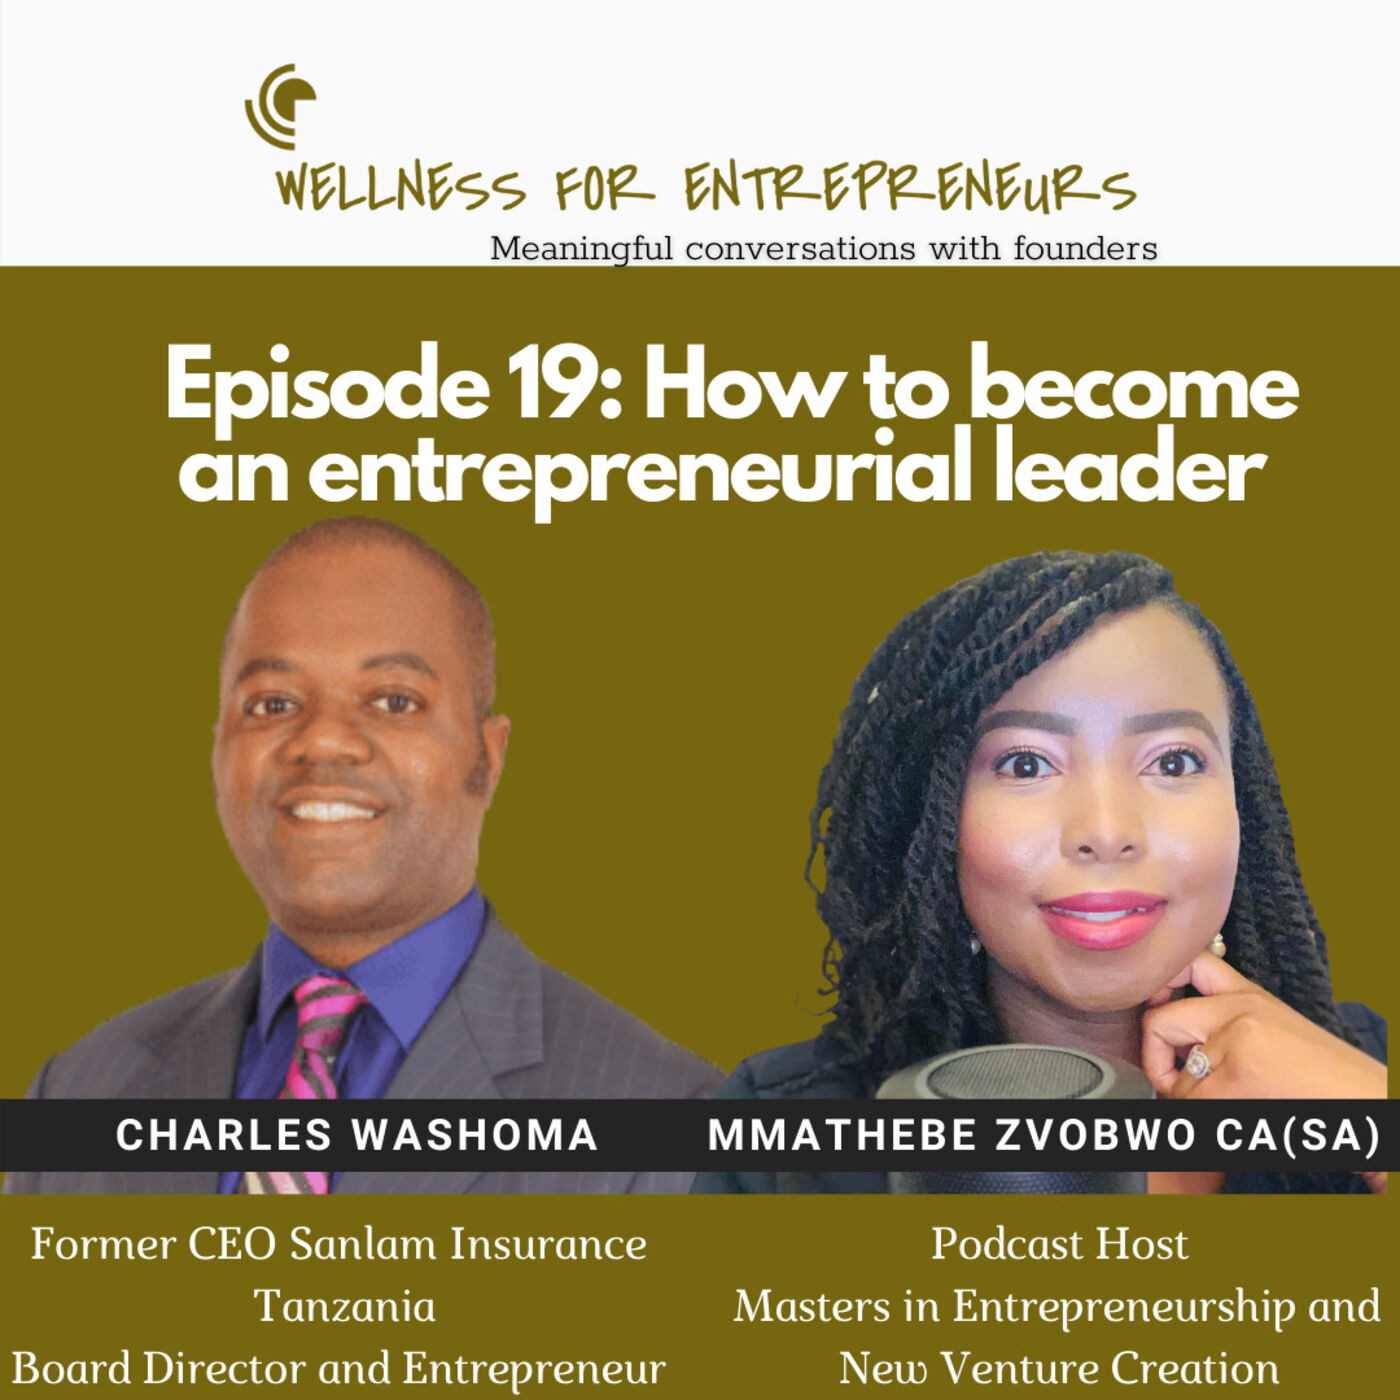 Episode 19: How to become an entrepreneurial leader, with Charles Washoma